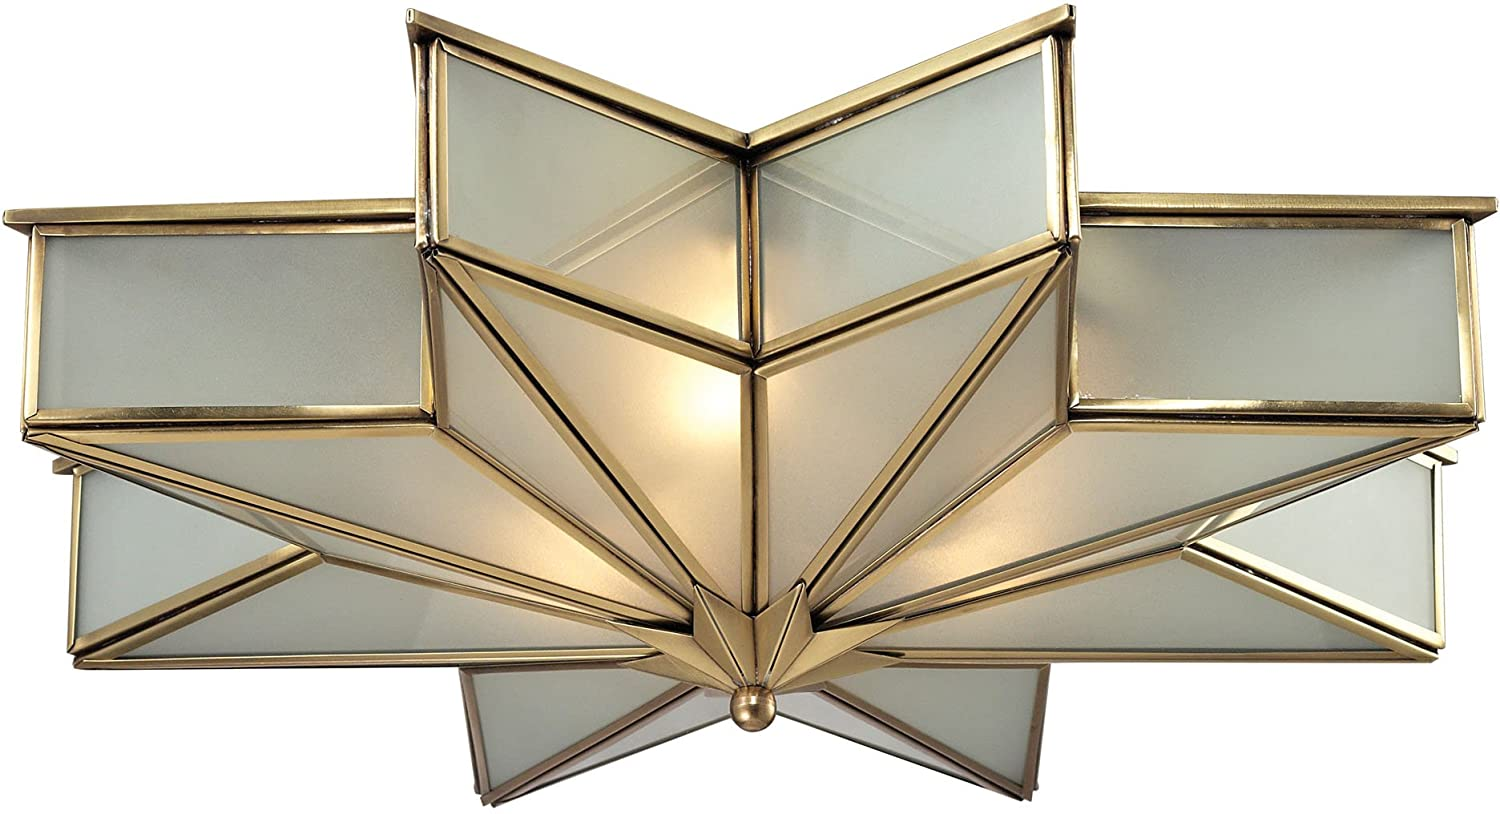 Elk lighting 220113 decostar collection 3 light flush mount elk lighting 220113 decostar collection 3 light flush mount brushed brass amazon mozeypictures